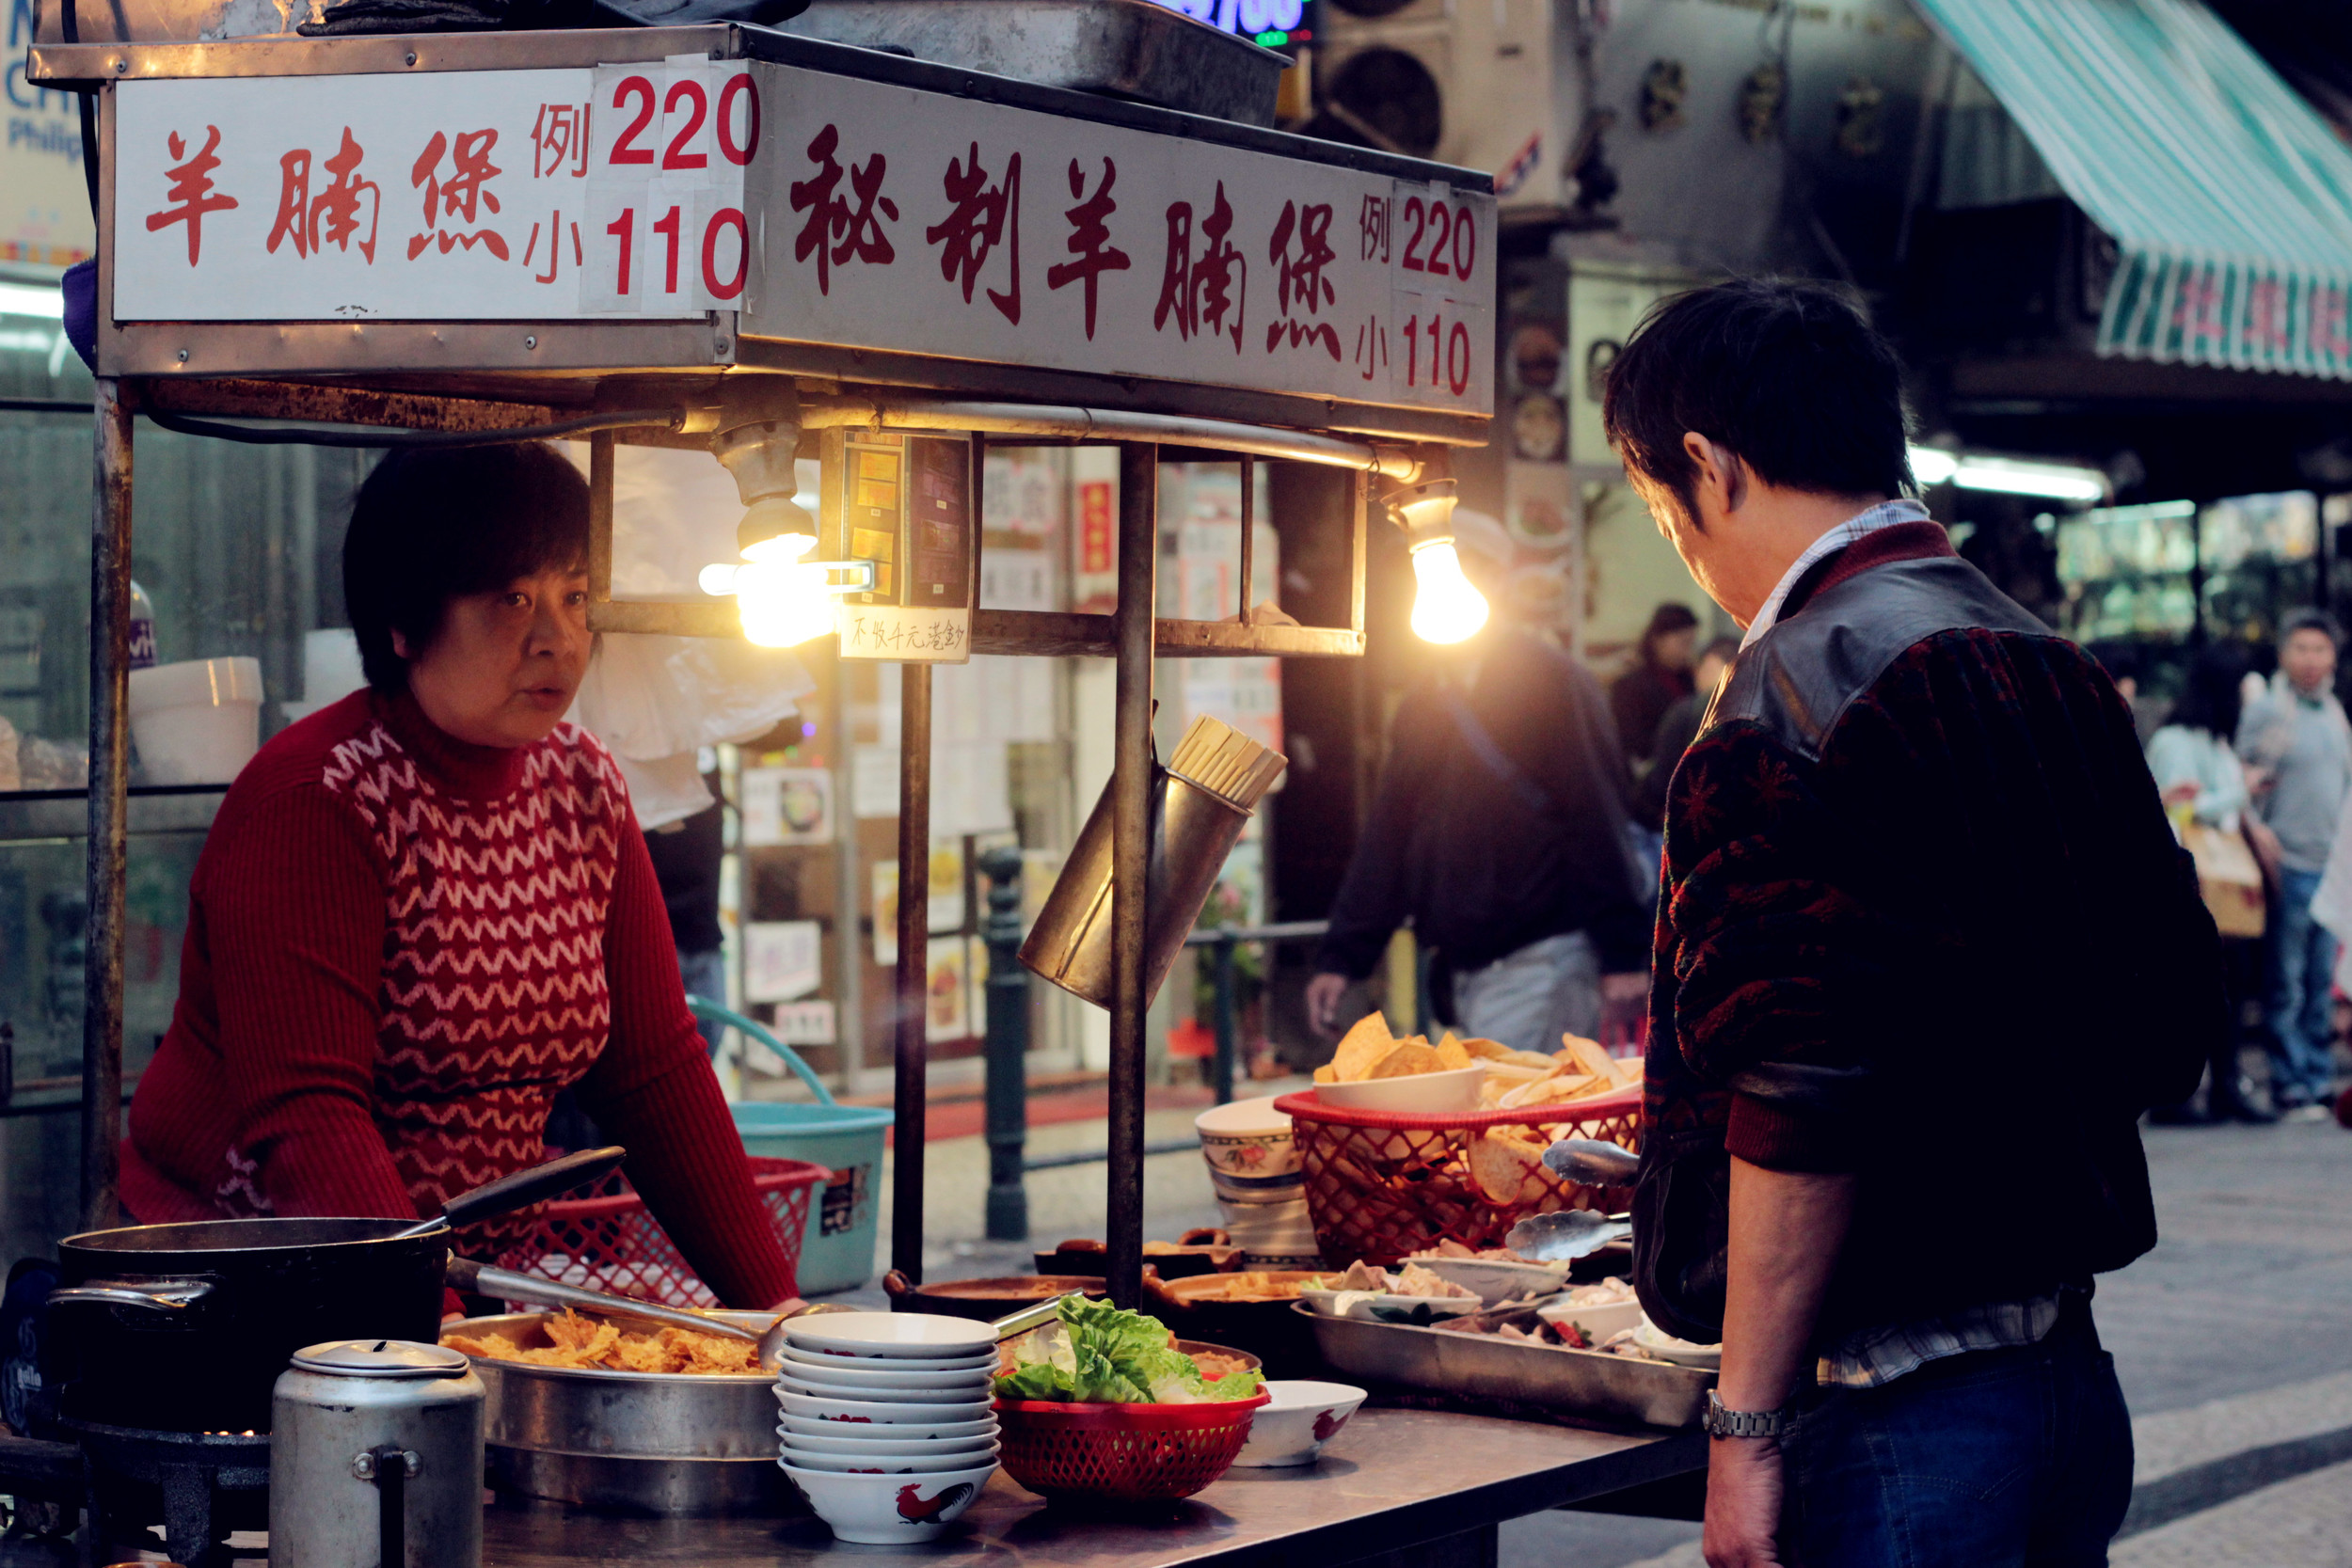 Street food vendor in  Macau, China . Photo by  Duo Chen.